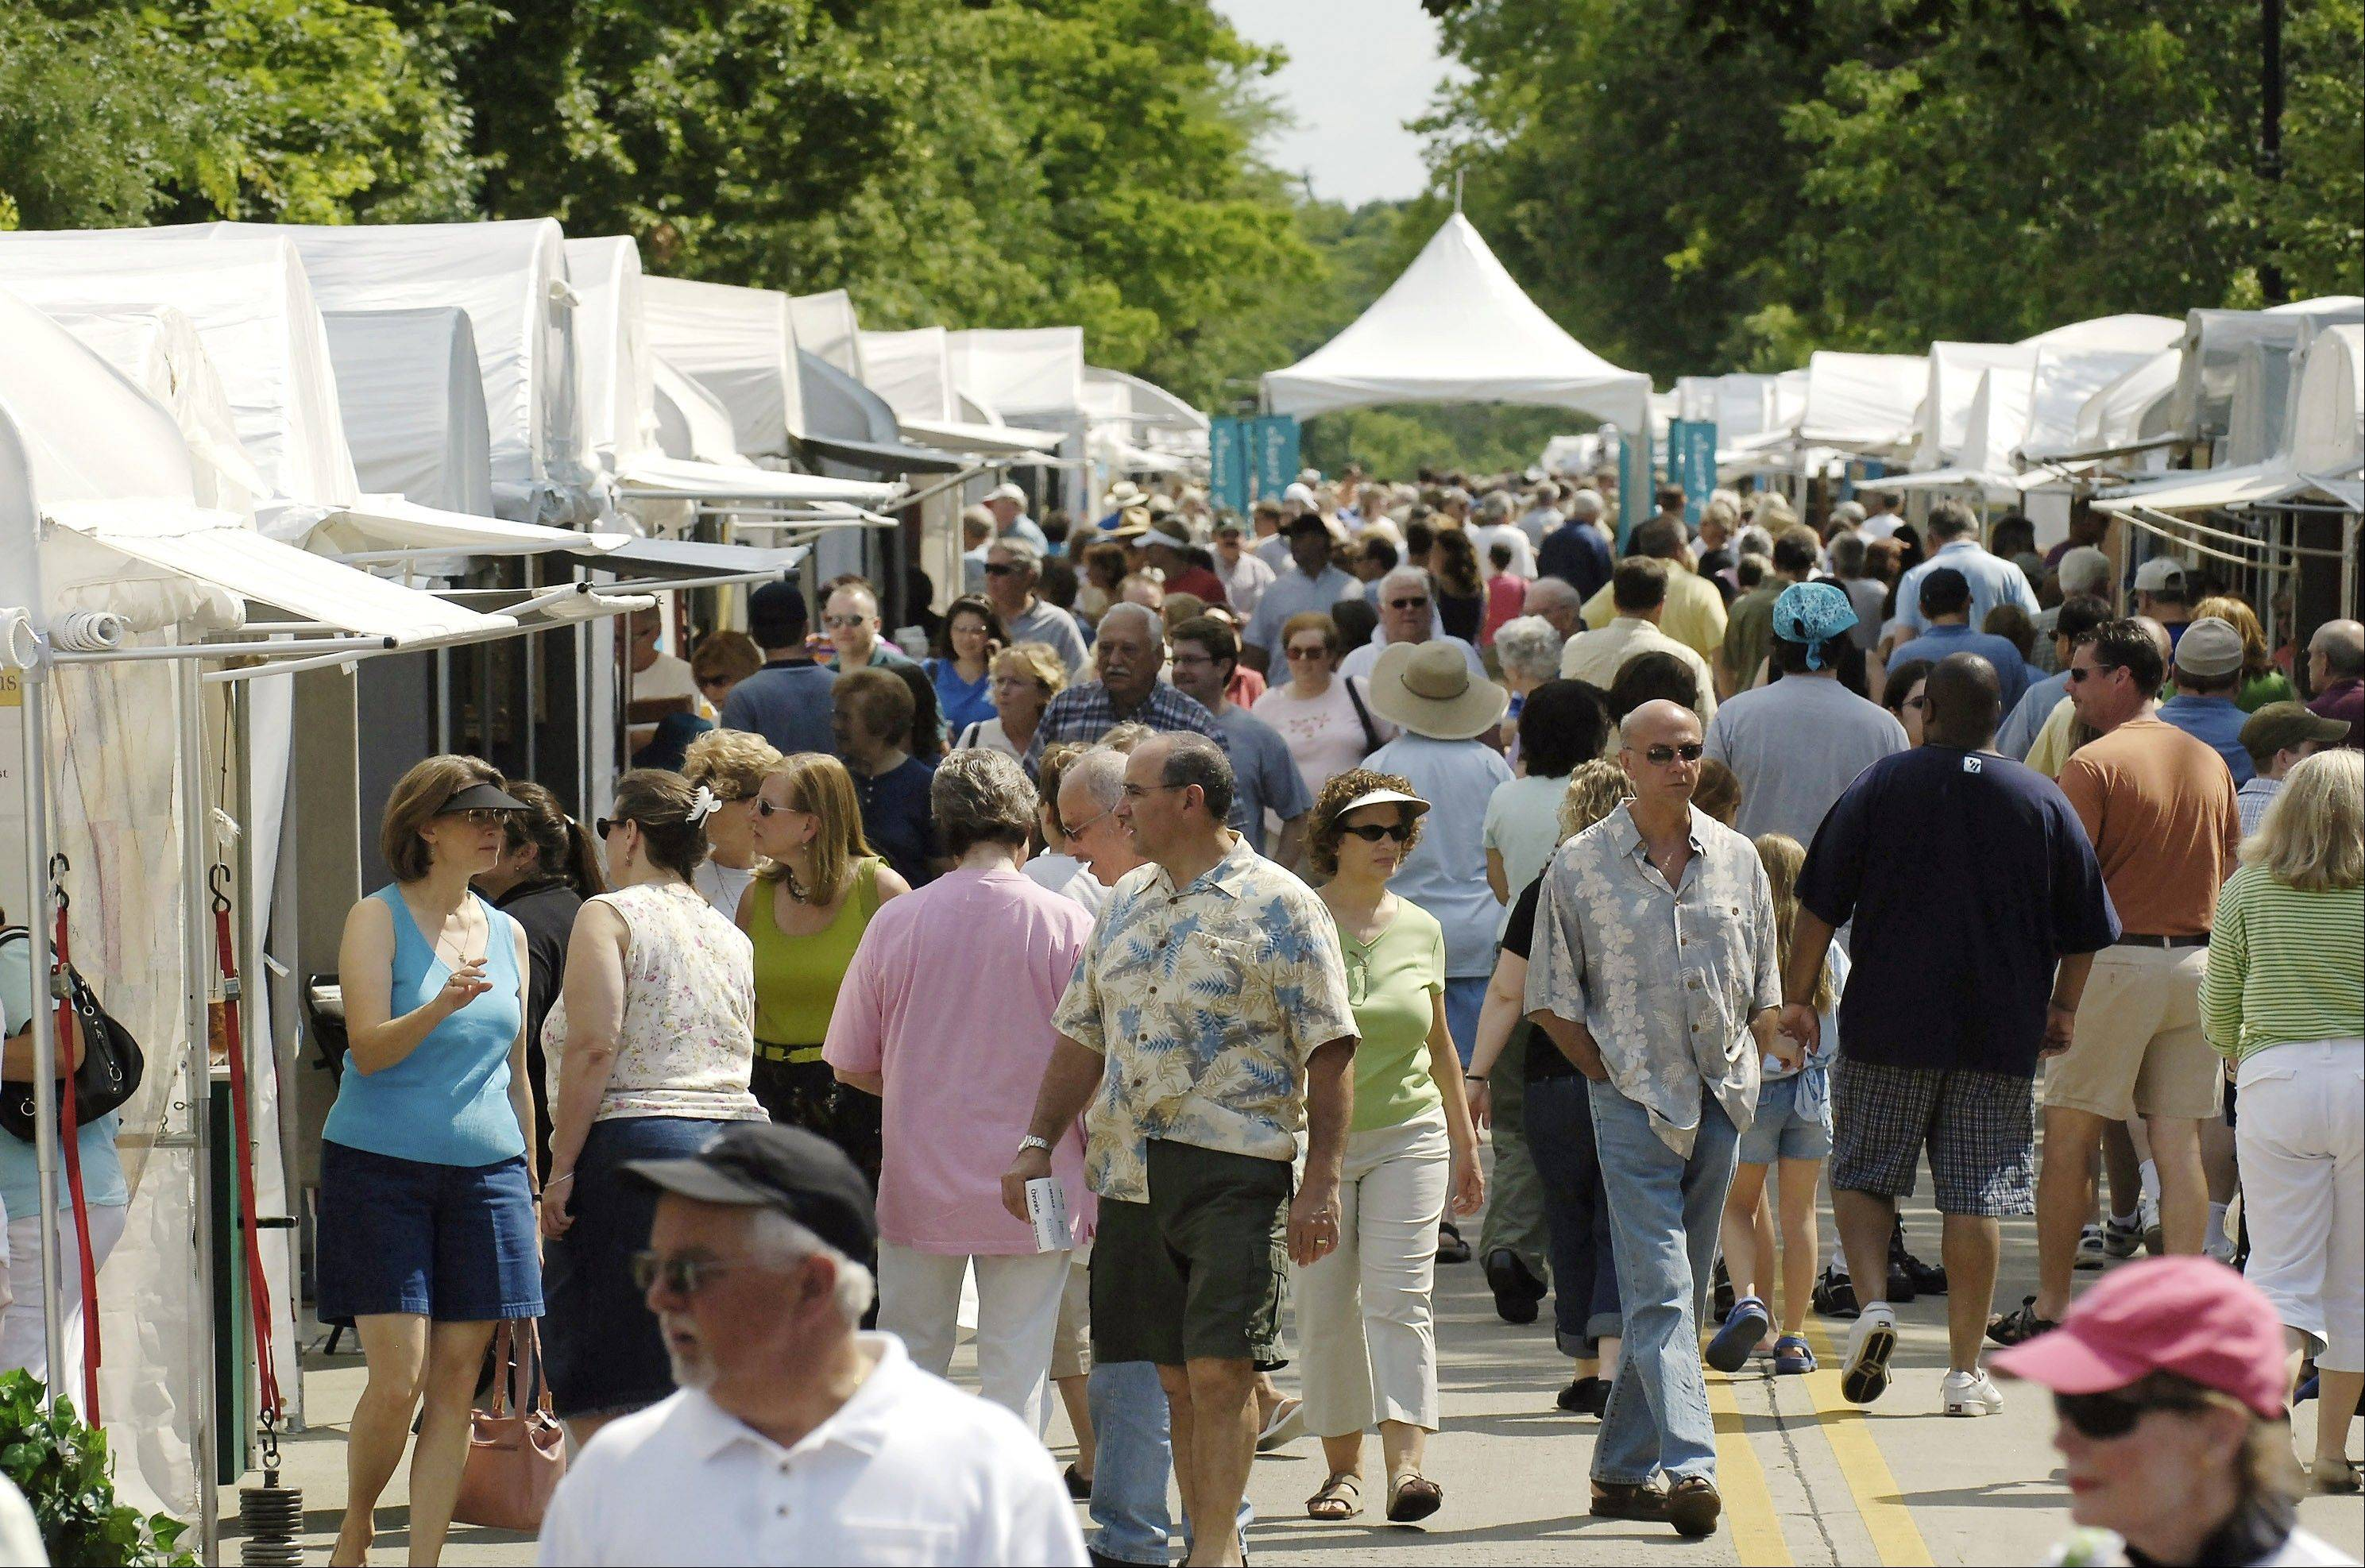 The Geneva Arts Fair on Third Street in downtown Geneva typically draws a crowd of more than 20,000 over the weekend, organizers say. About 160 artists are expected at this weekend's show.